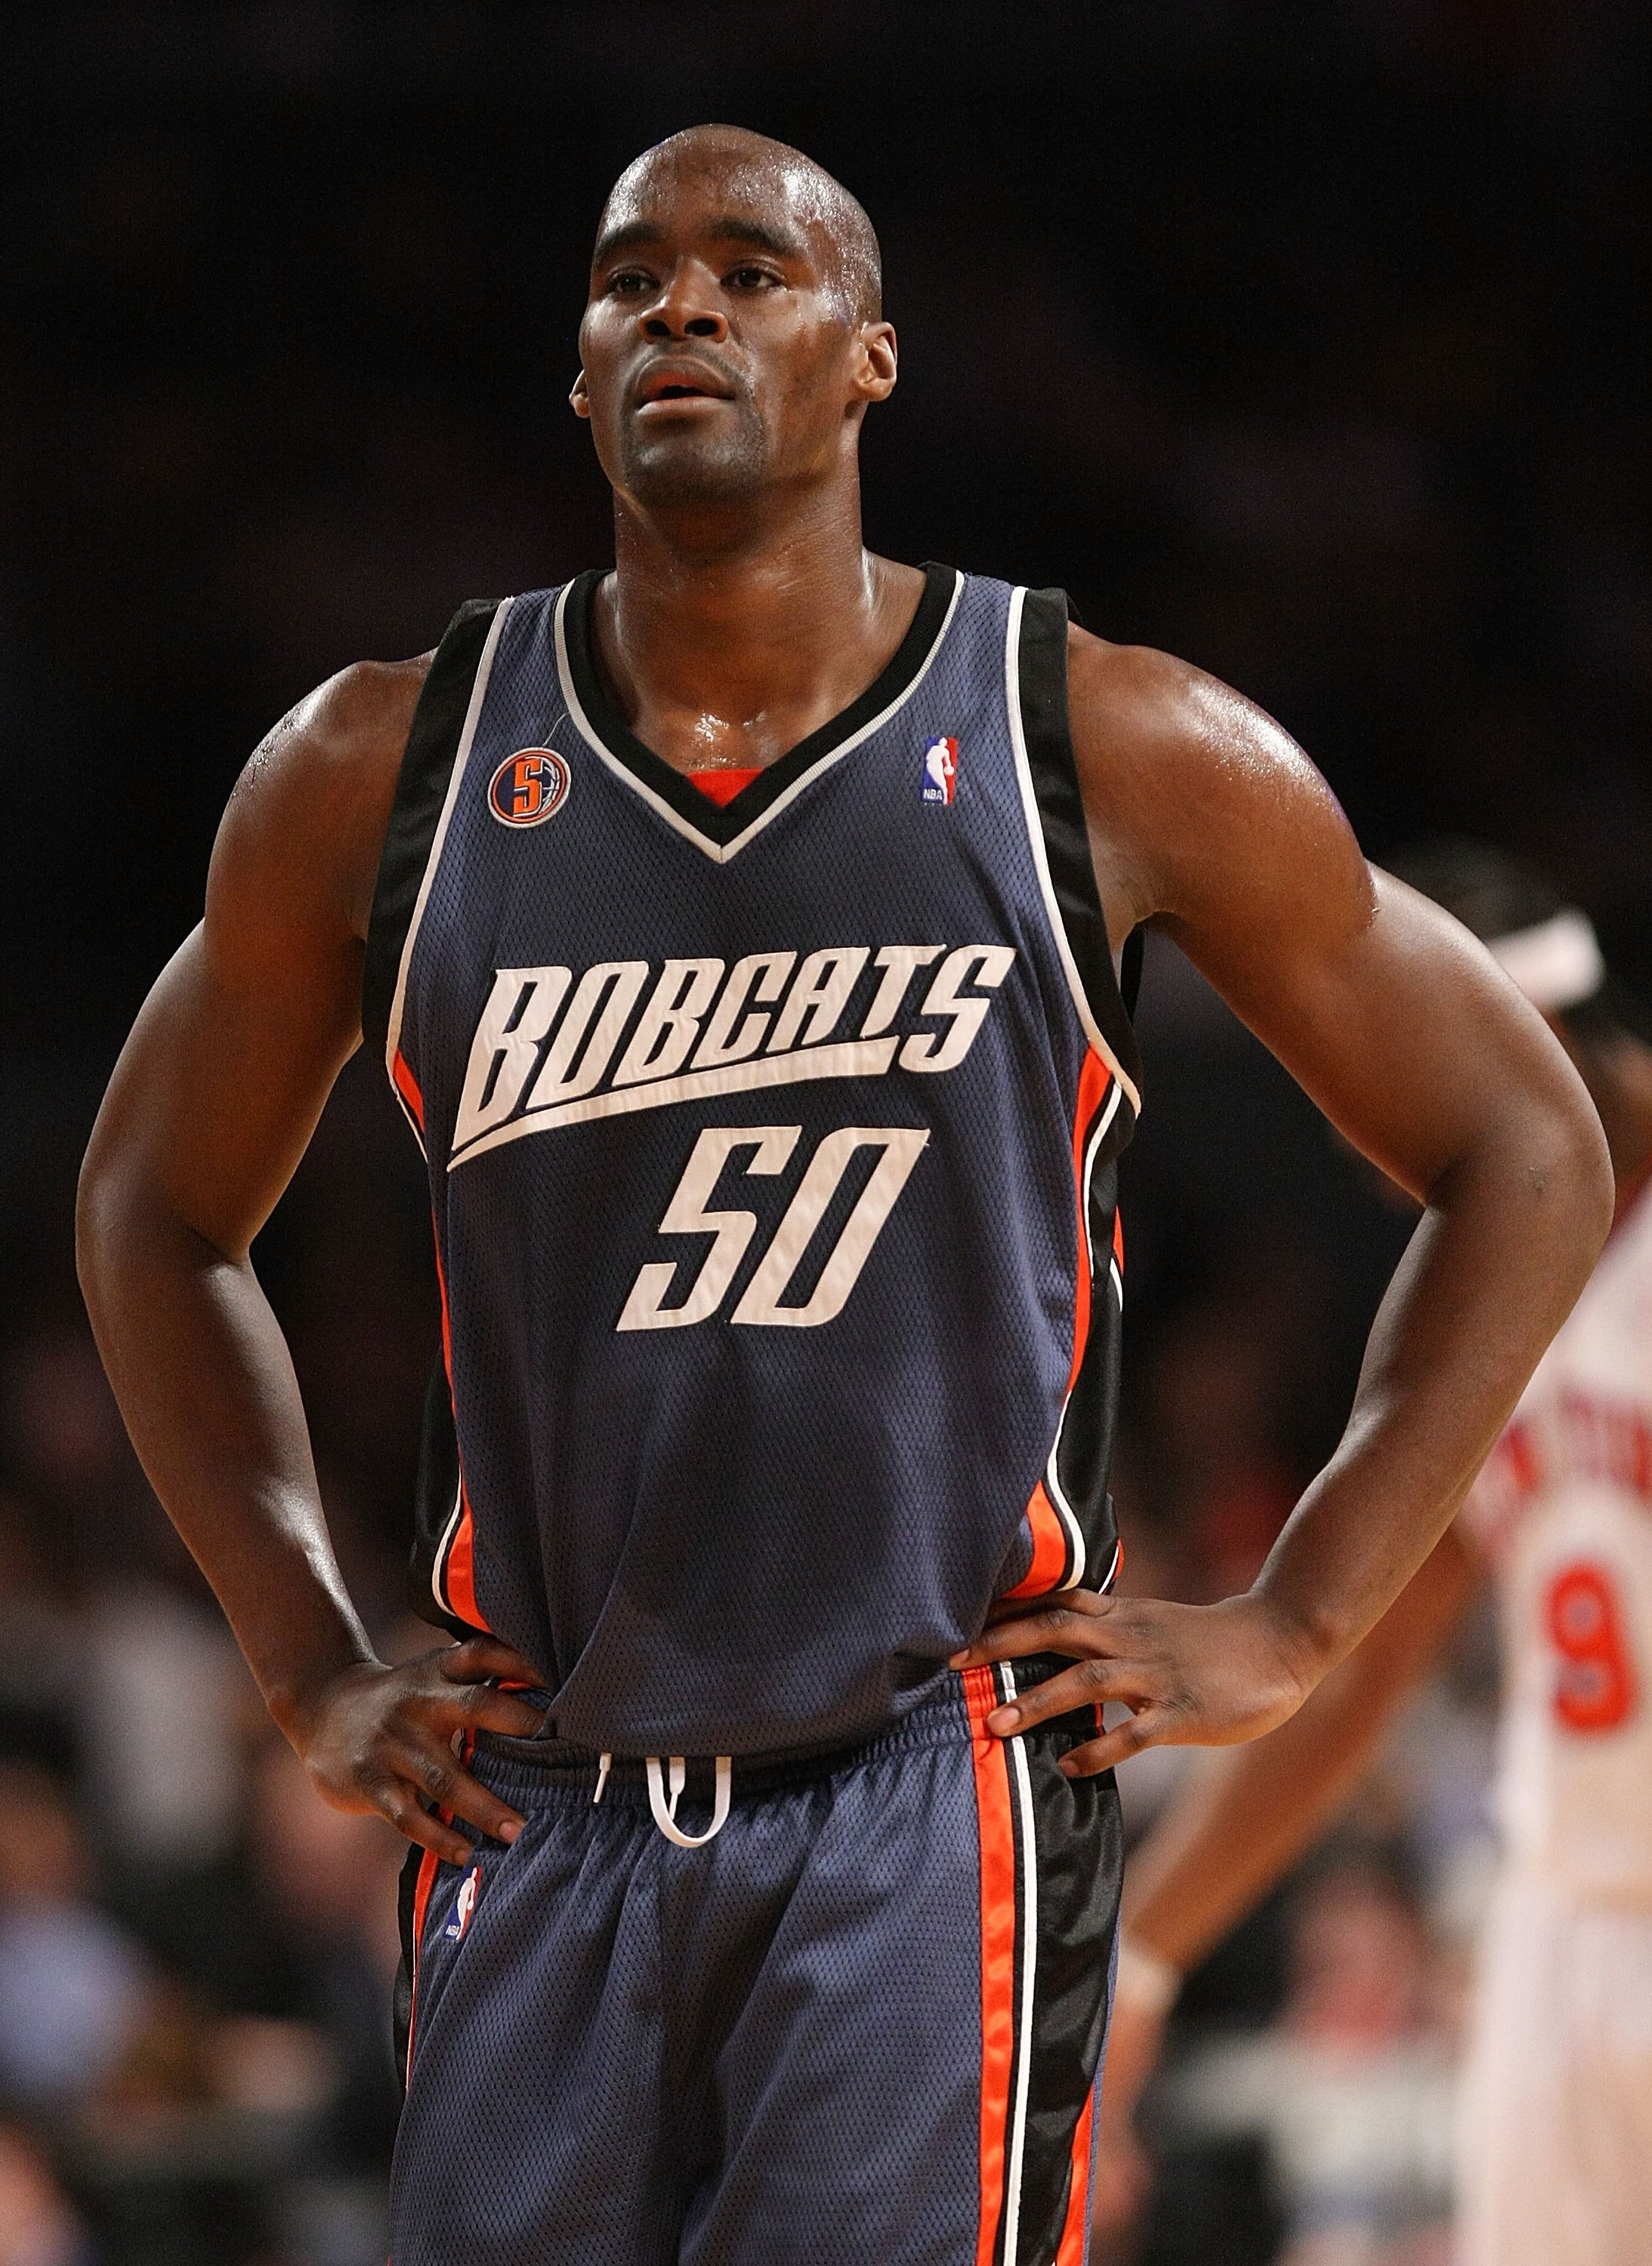 74170faa483 NEW YORK - MARCH 07: Emeka Okafor #50 of the Charlotte Bobcats looks on